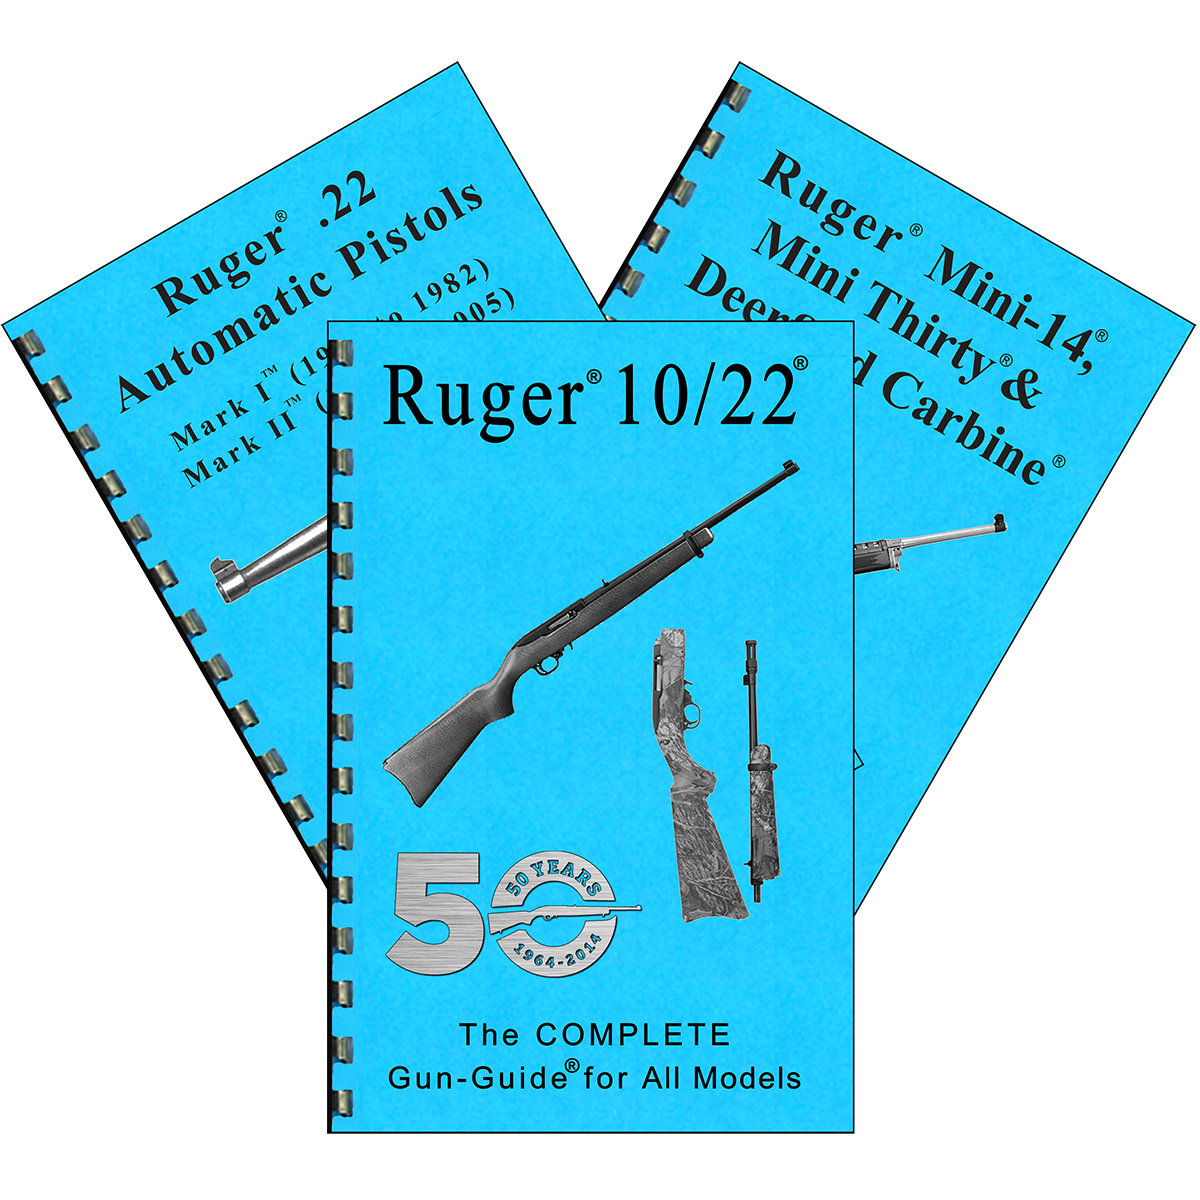 DEALER RUGER COMPLETE GUIDES (3)